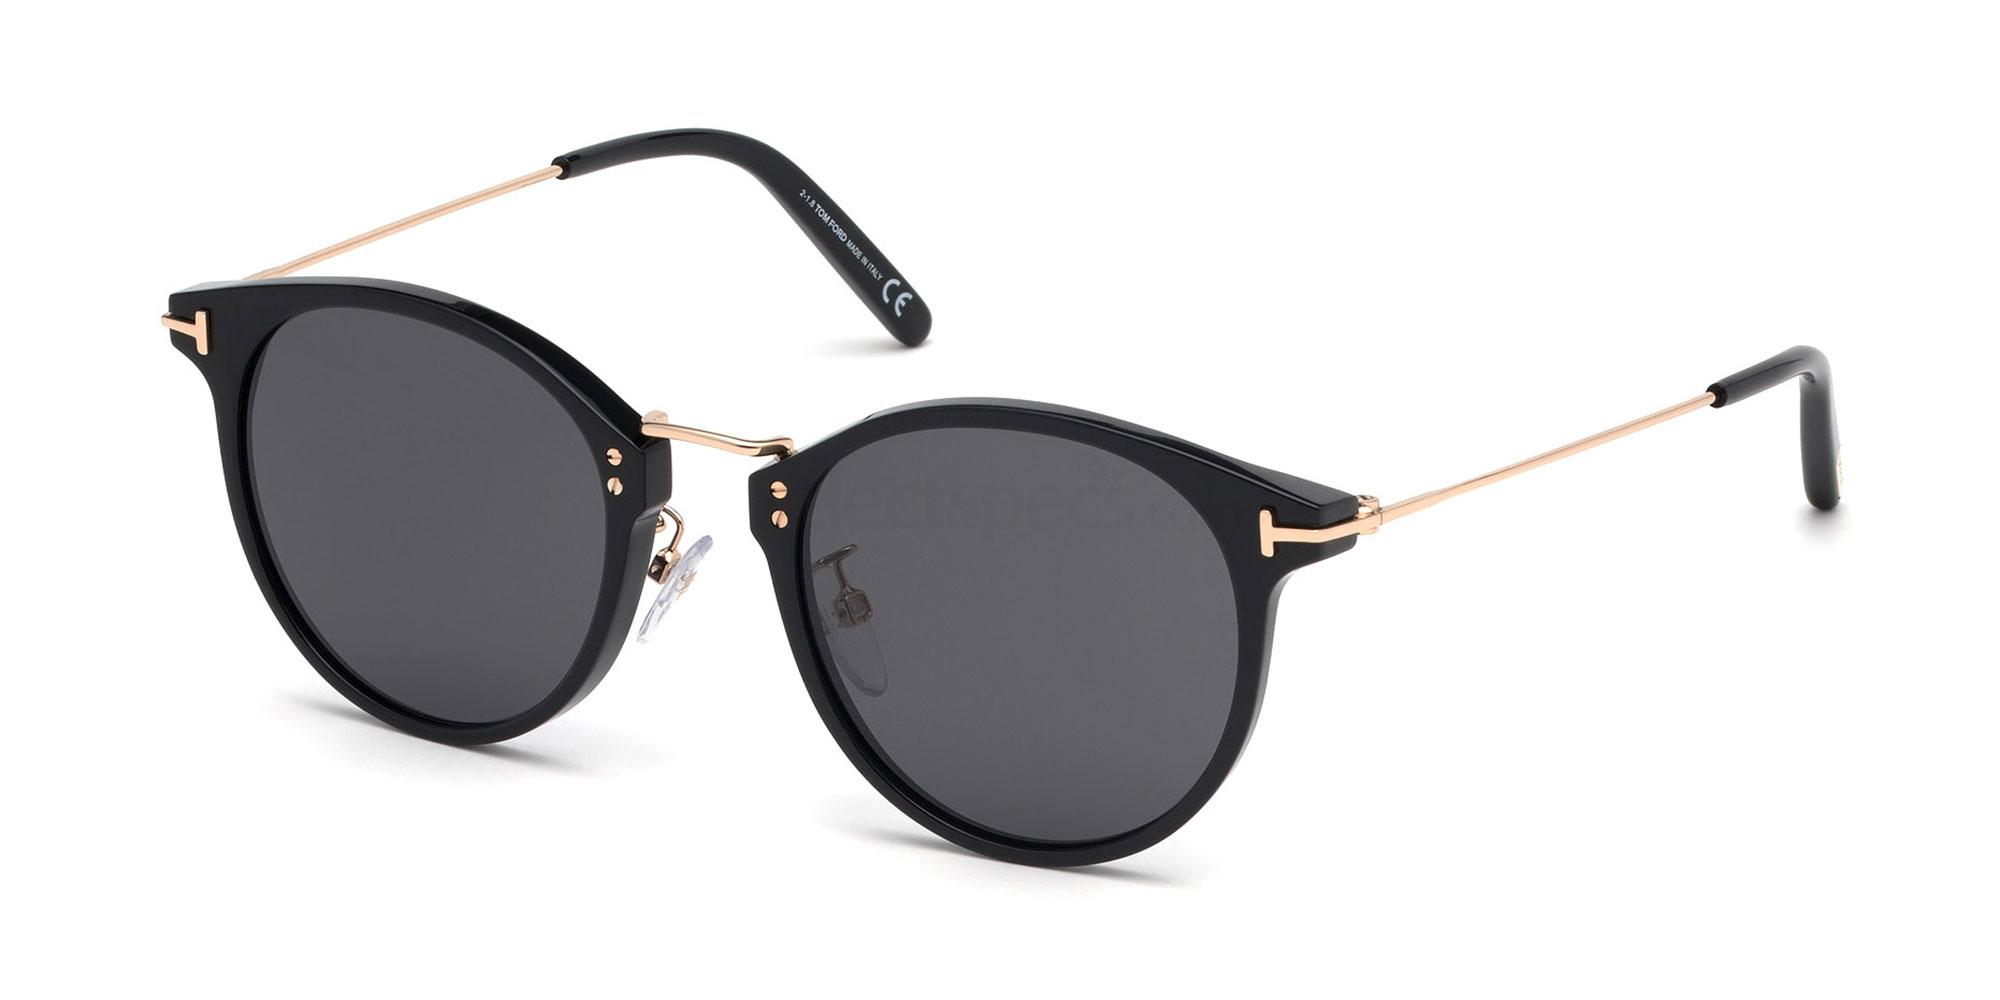 01A FT0673 Sunglasses, Tom Ford